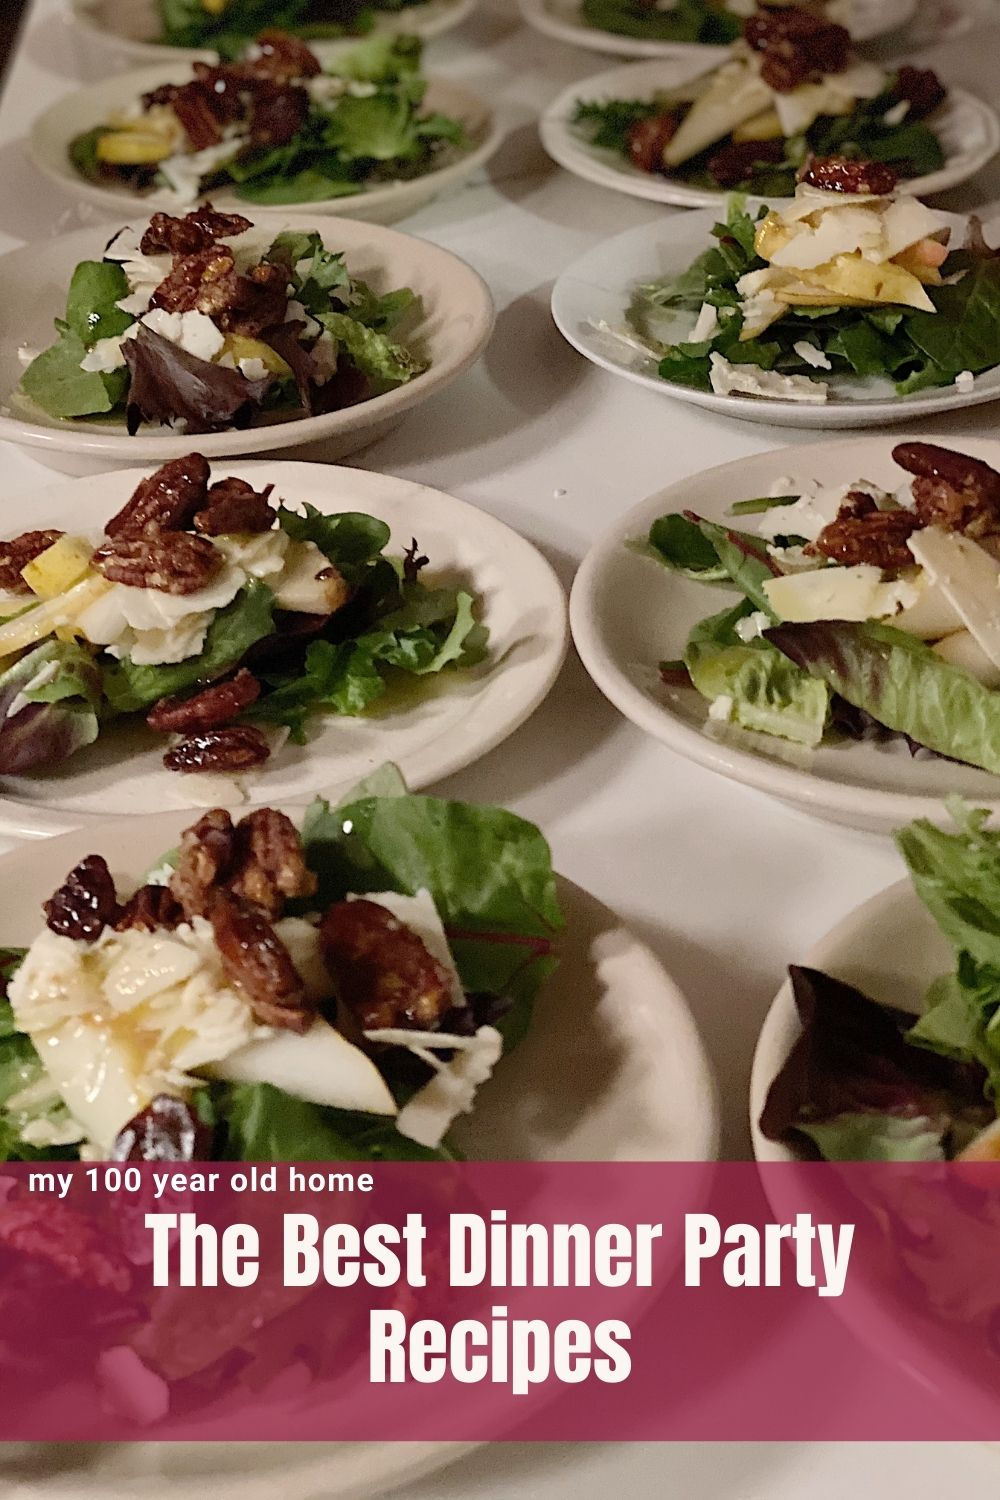 I love to cook and entertain so cooking a seven course dinner party was not hard to do. Today I am sharing my best dinner party recipes from the dinner.